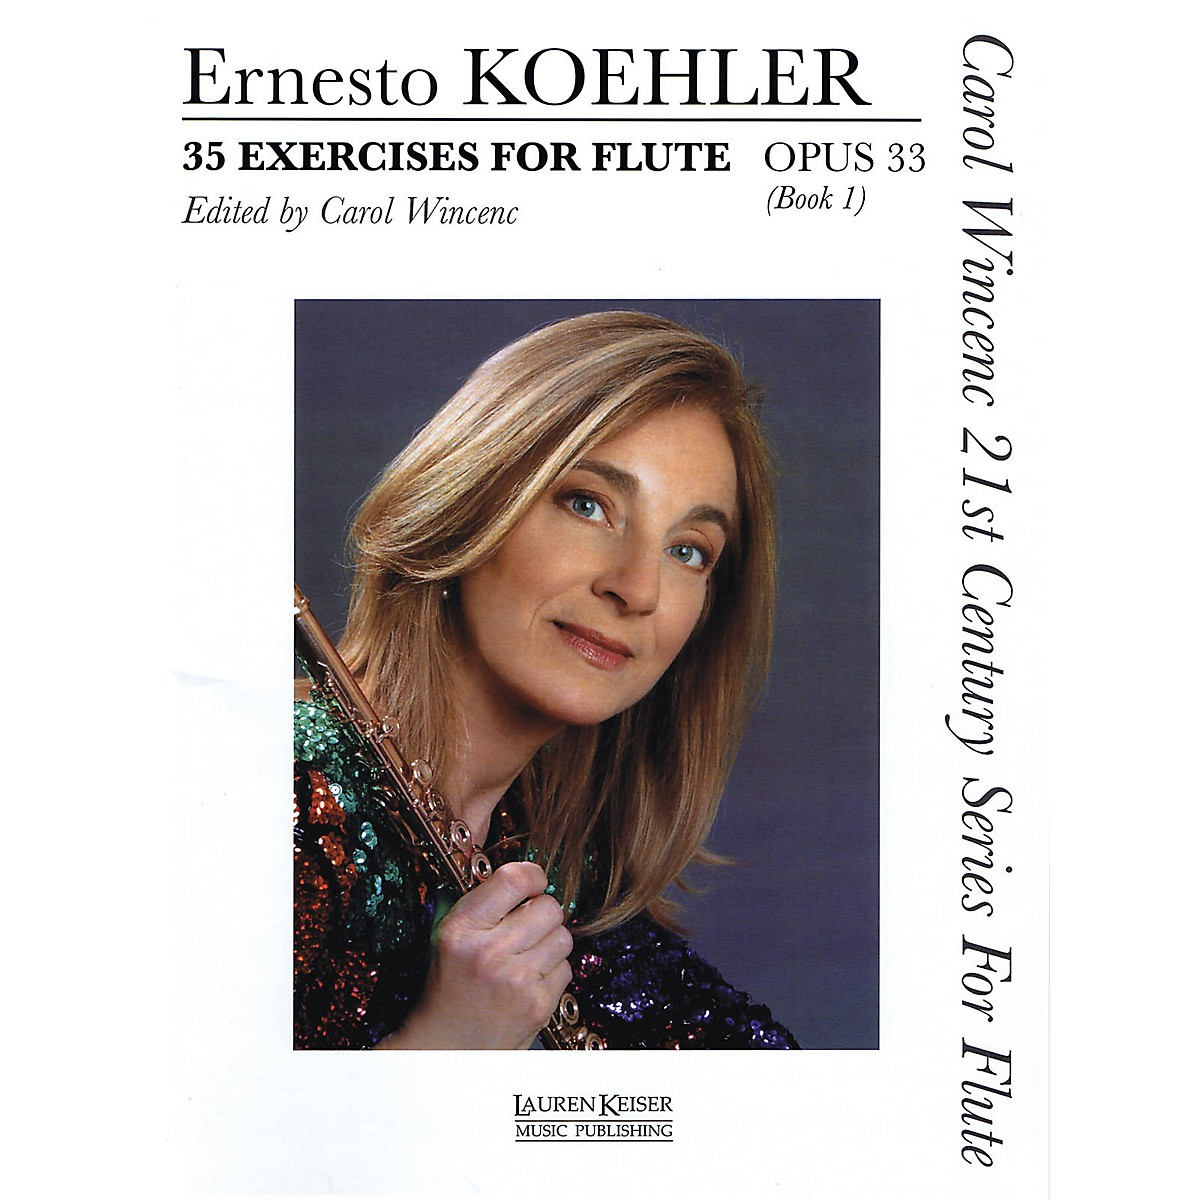 Lauren Keiser Music Publishing 35 Exercises for Flute, Op. 33 (Carol Wincenc 21st Century Series for Flute - Book 1) LKM Music Series